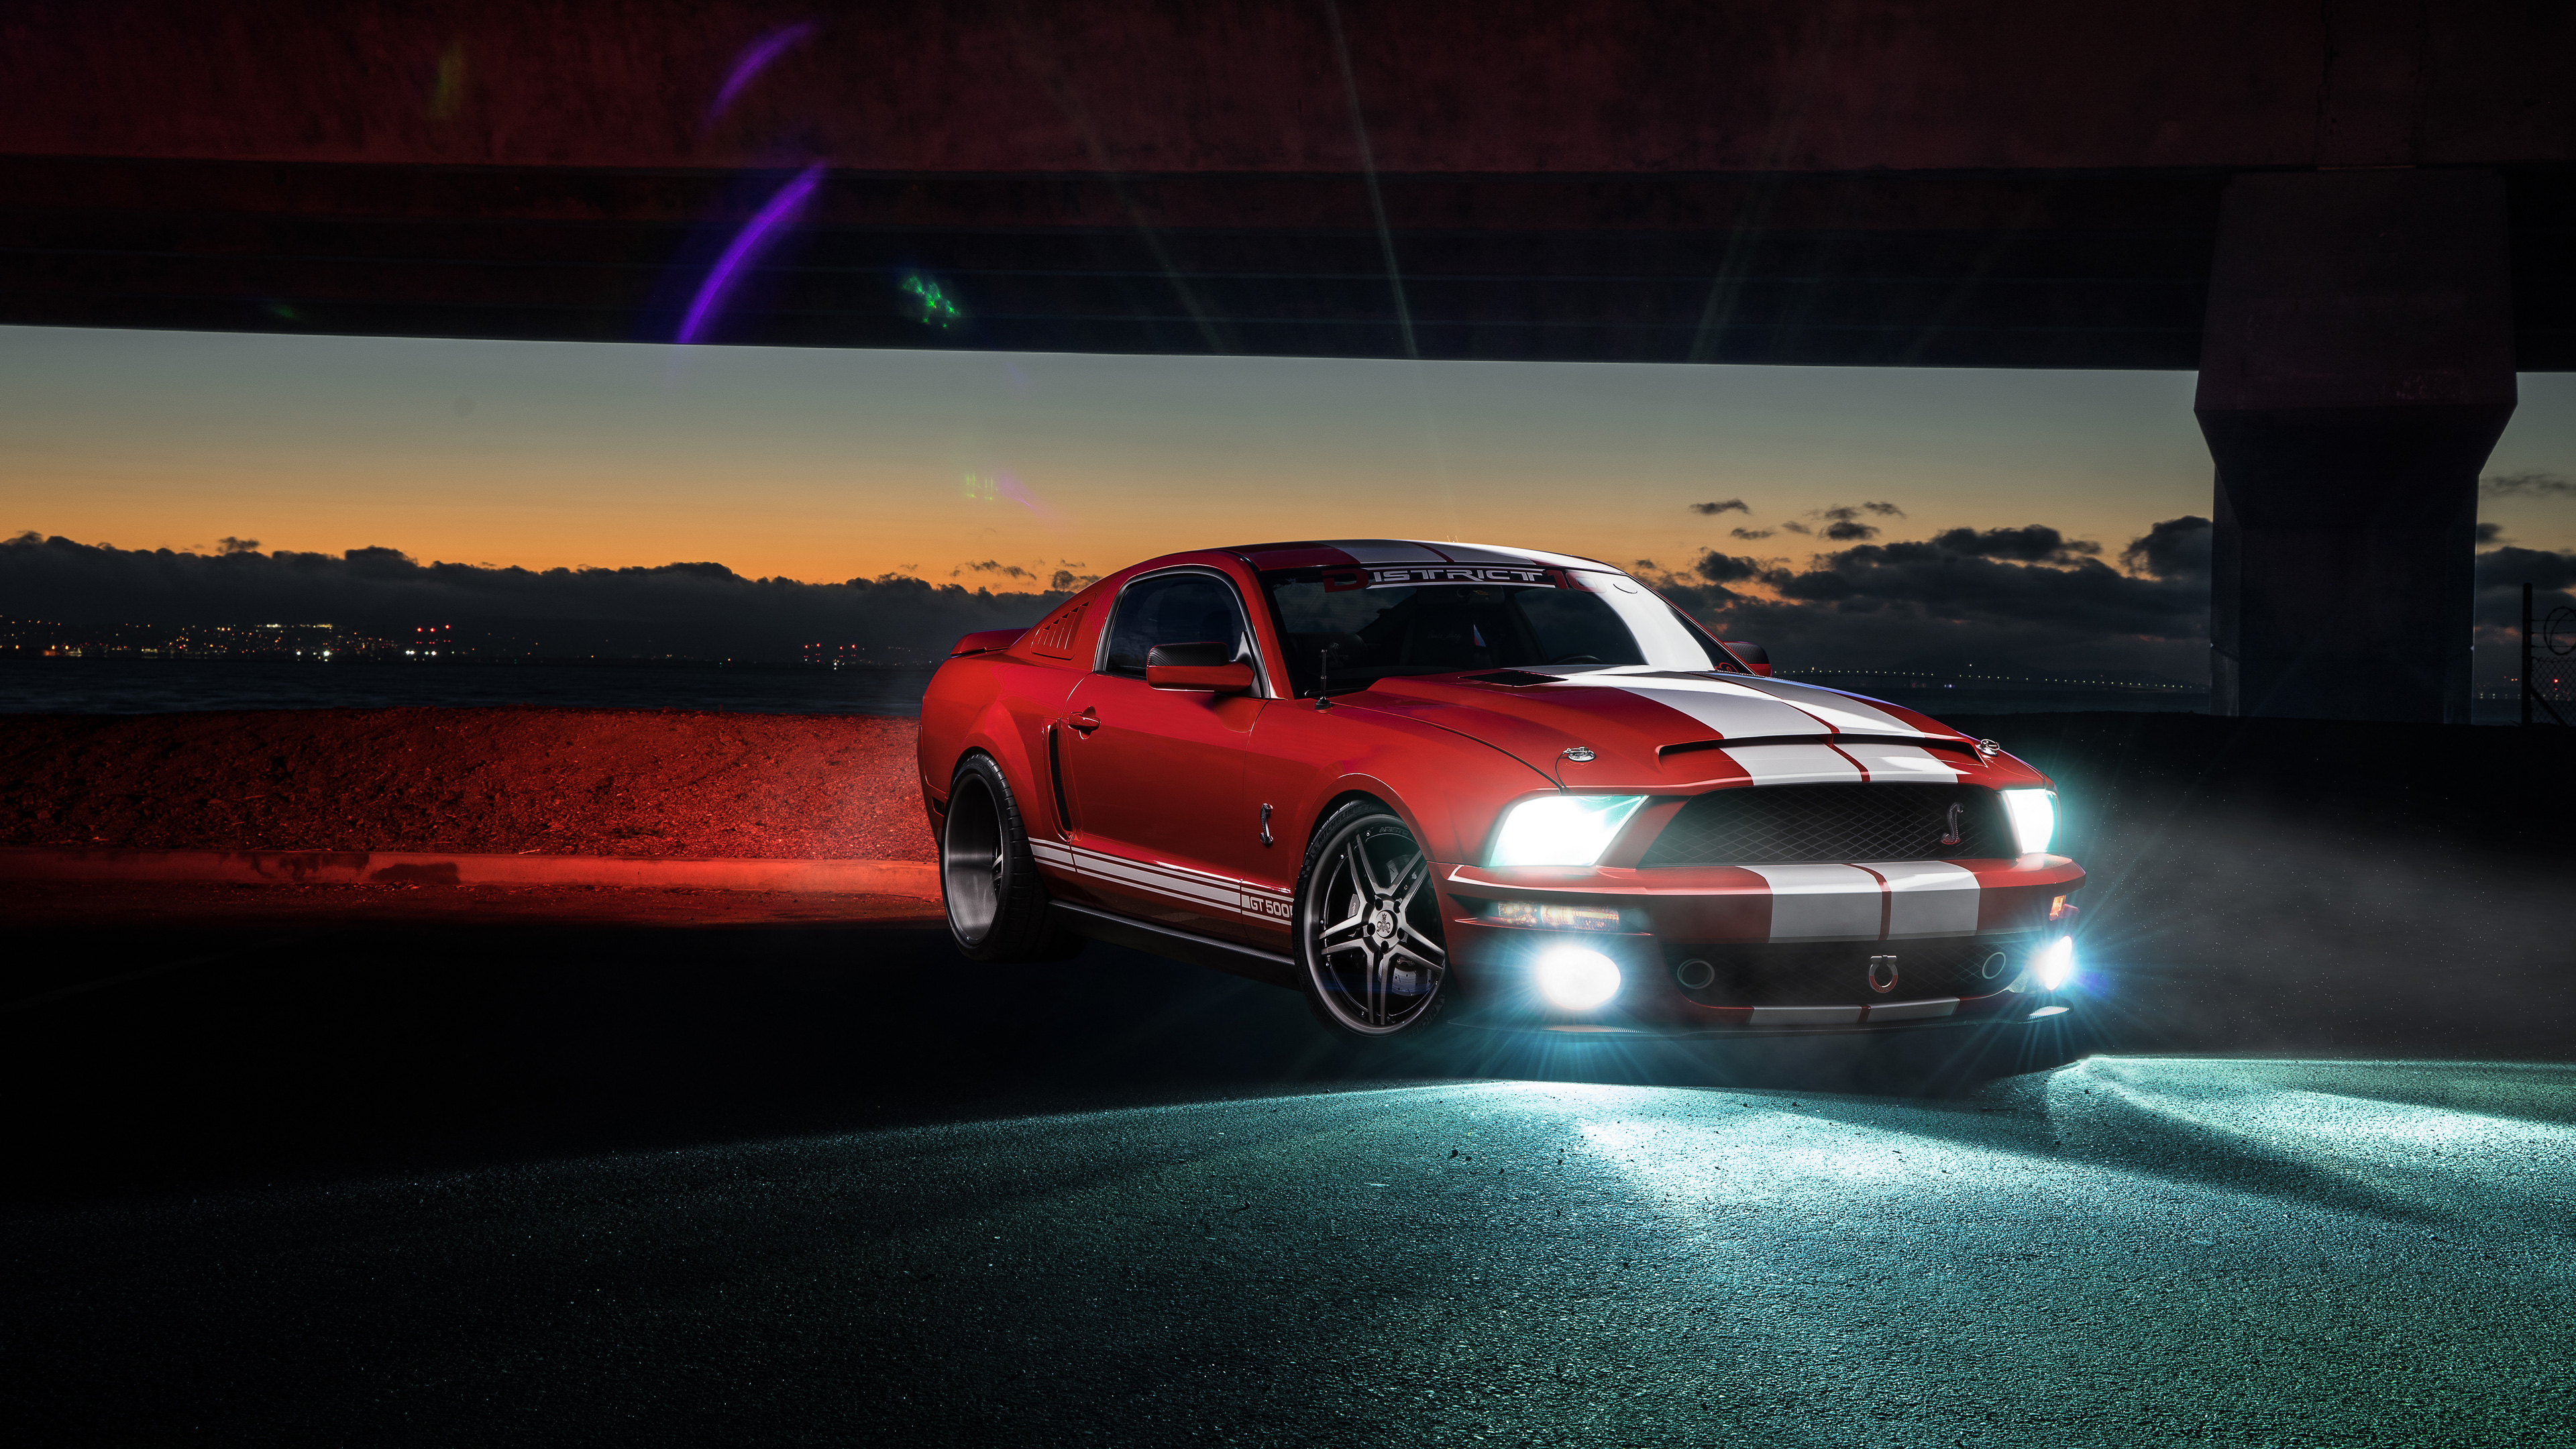 Ford Mustang Shelby Gt500 Wallpaper HD